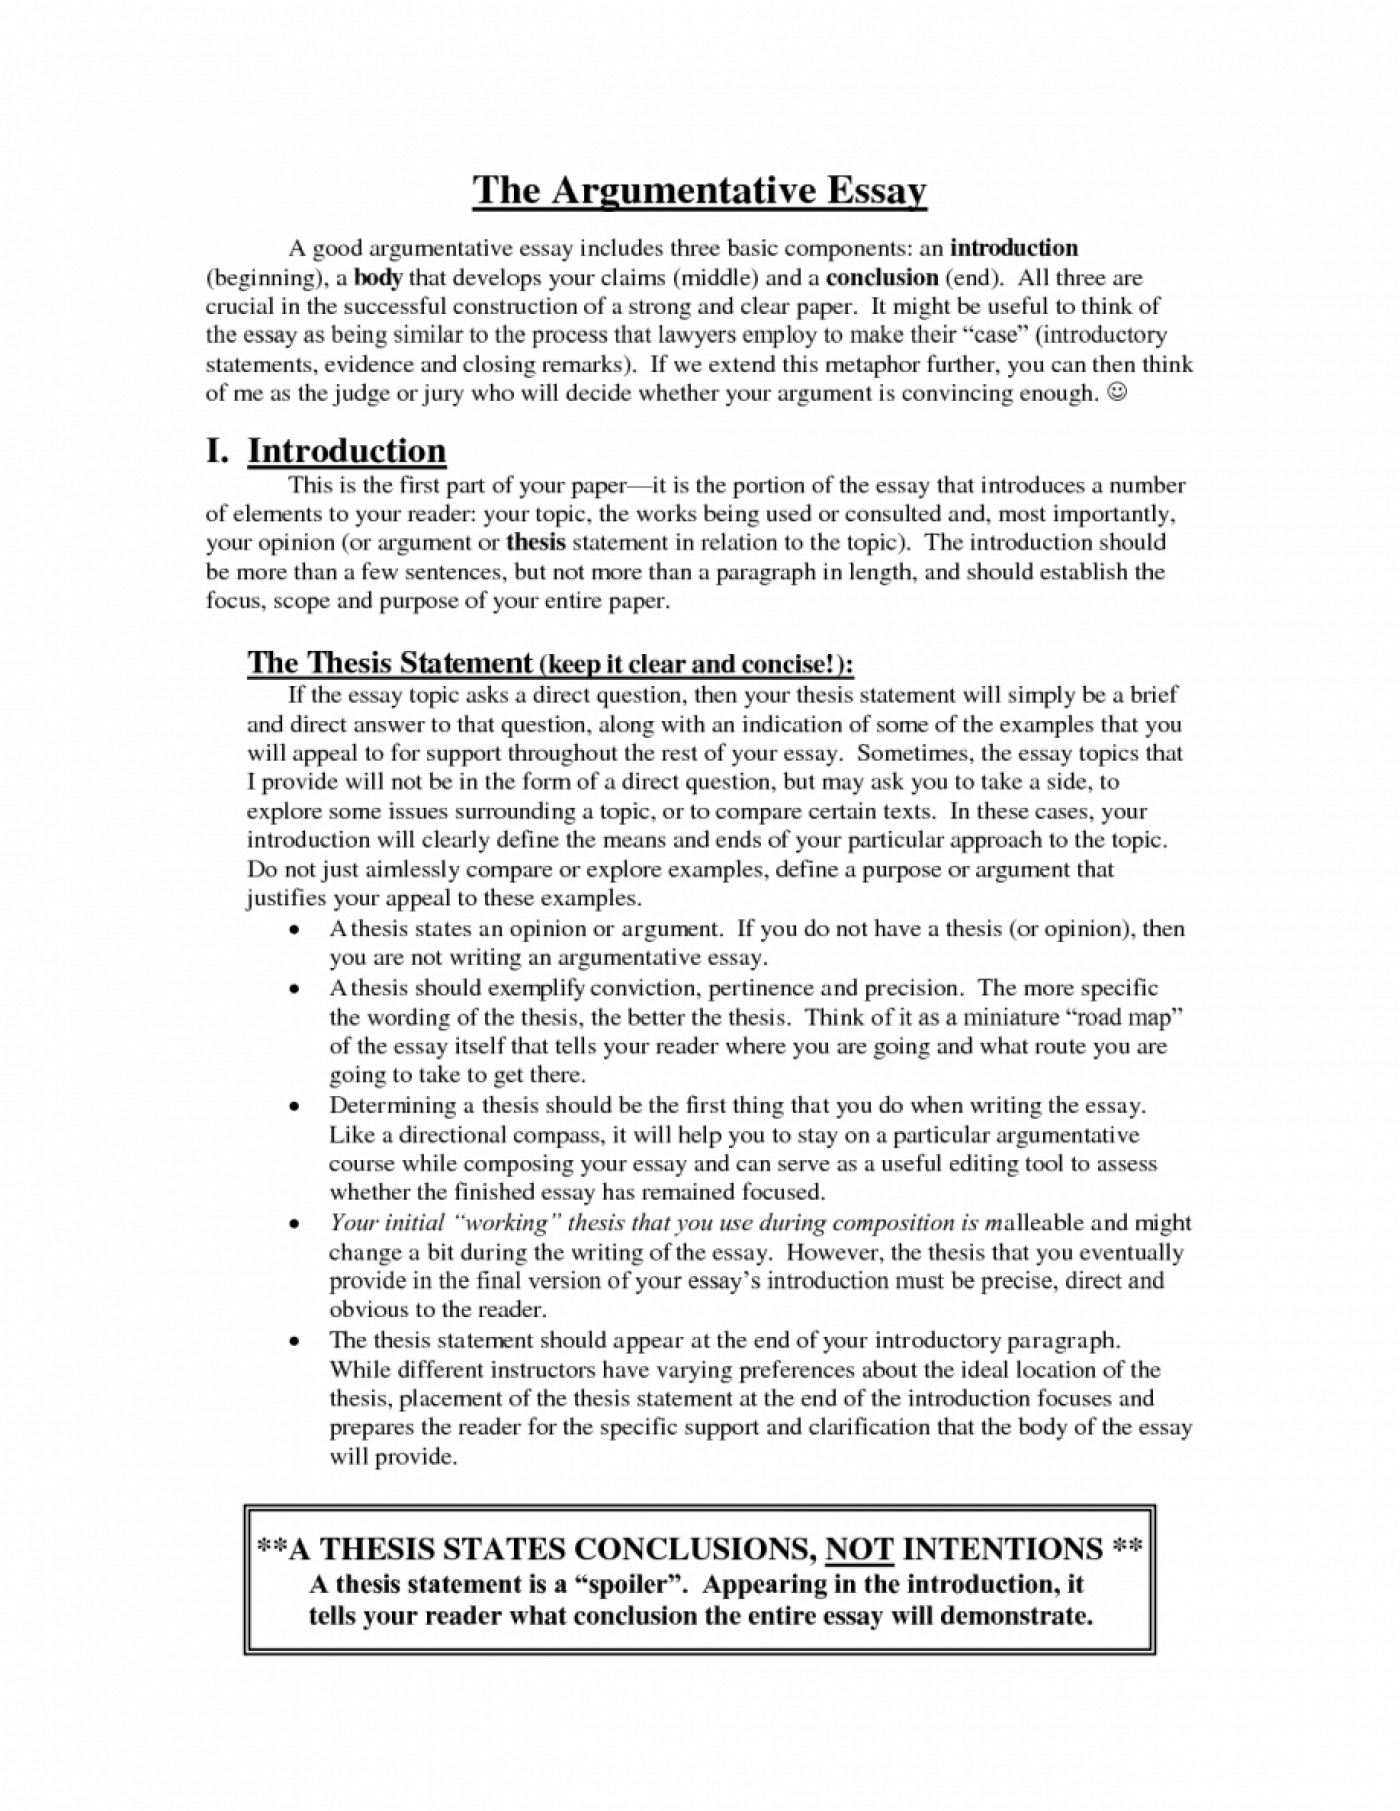 005 Argumentative Essay Introduction Examples Example Help Writing An College Good Persuasive Paragraph Image Ga Samples Personal Awesome Middle School Format 1400